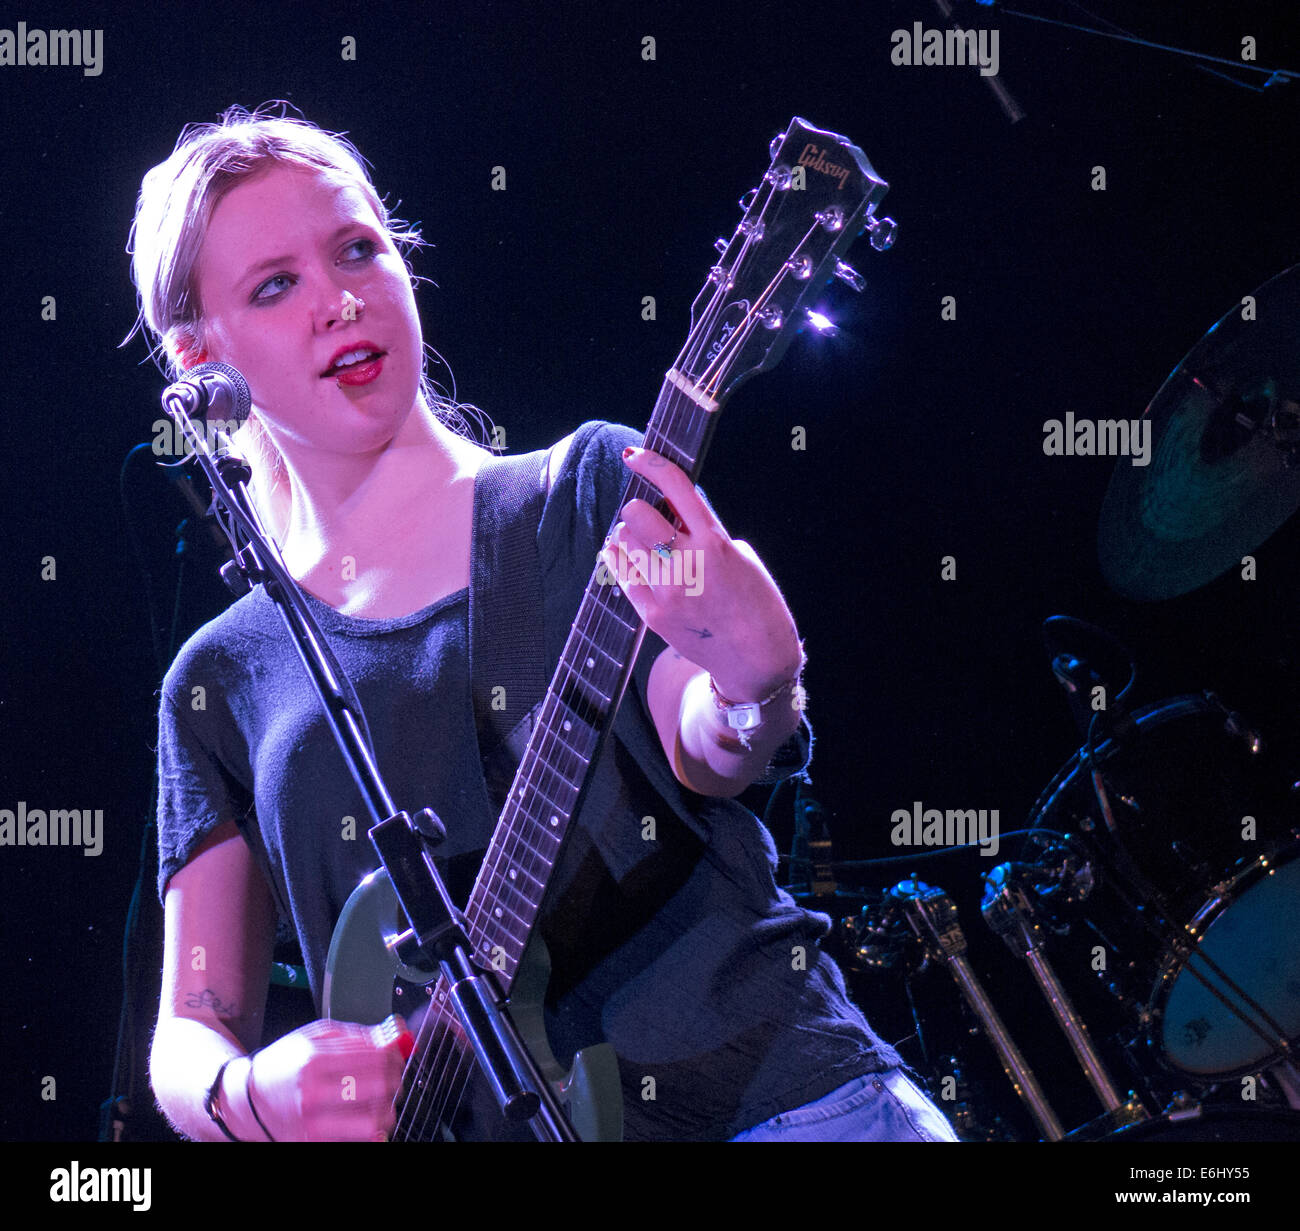 Misty Miller live at the Manchester Academy 17/11/2003 supporting Television, England, UK - Stock Image